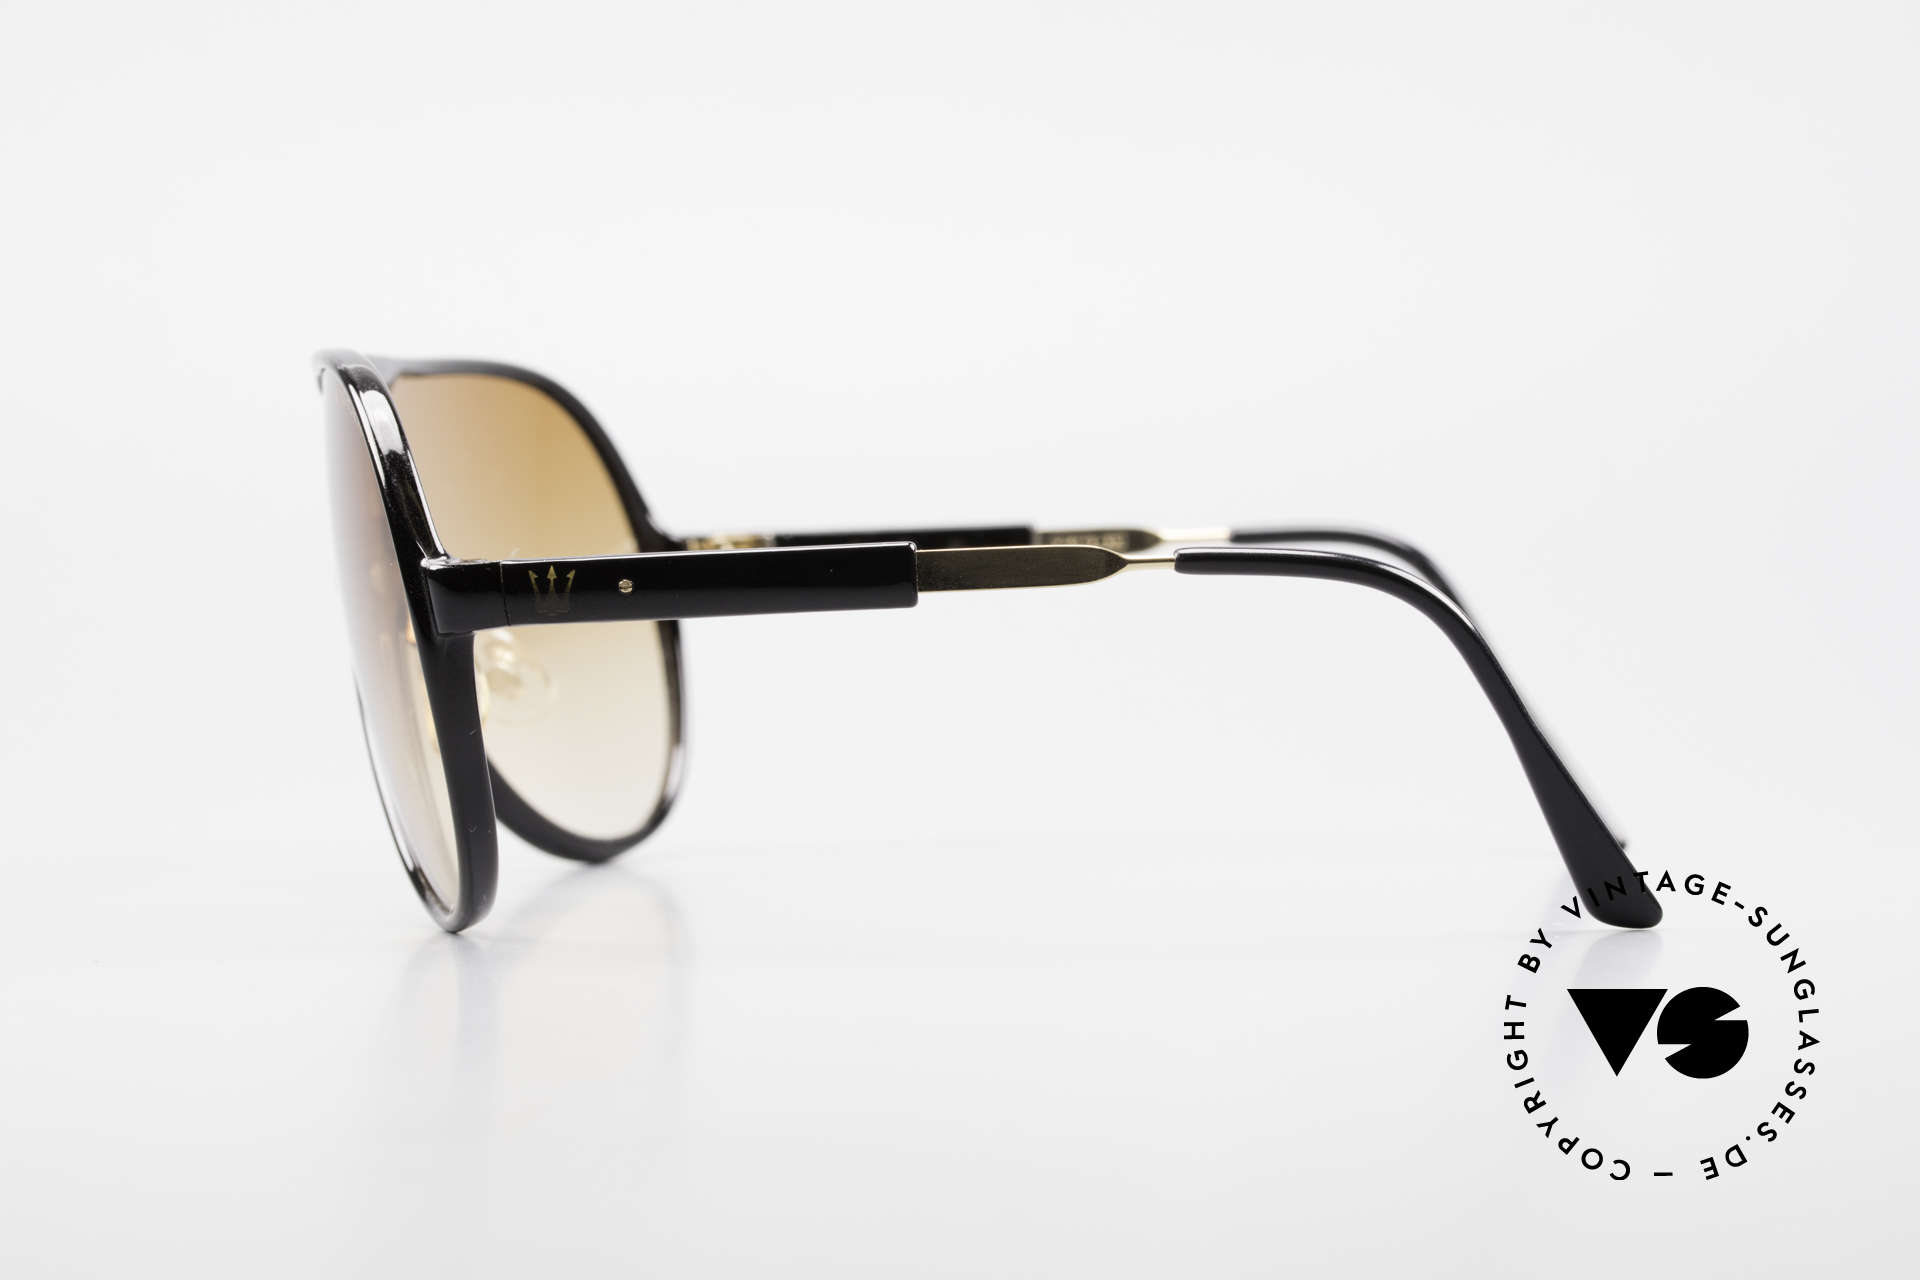 Maserati 6119 3 Lenses Sports Sunglasses, more quality, functionality and prestige isn't possible, Made for Men